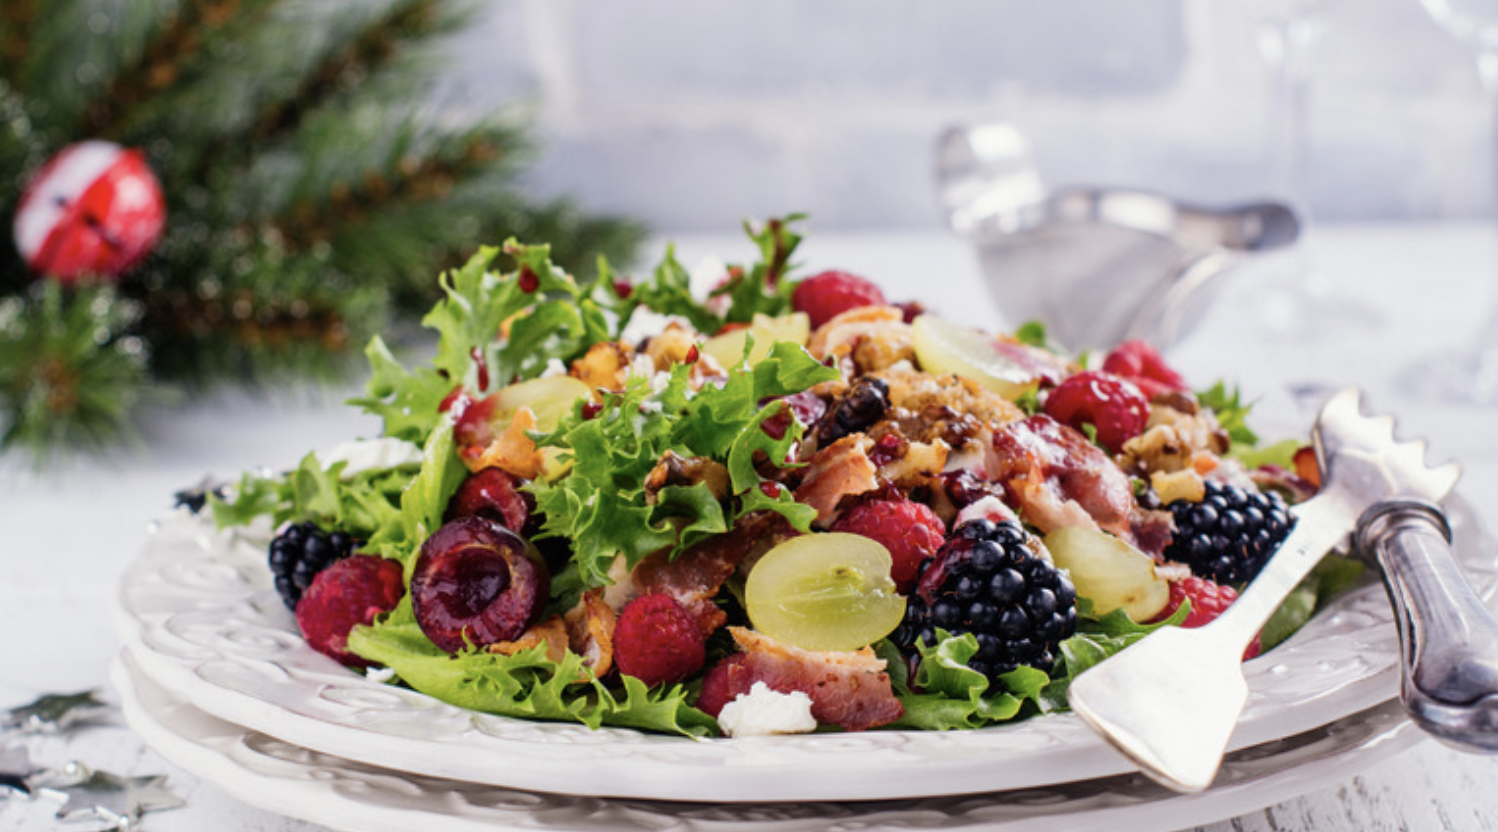 Maintain Your Health Over The Holiday Season in 6 Steps